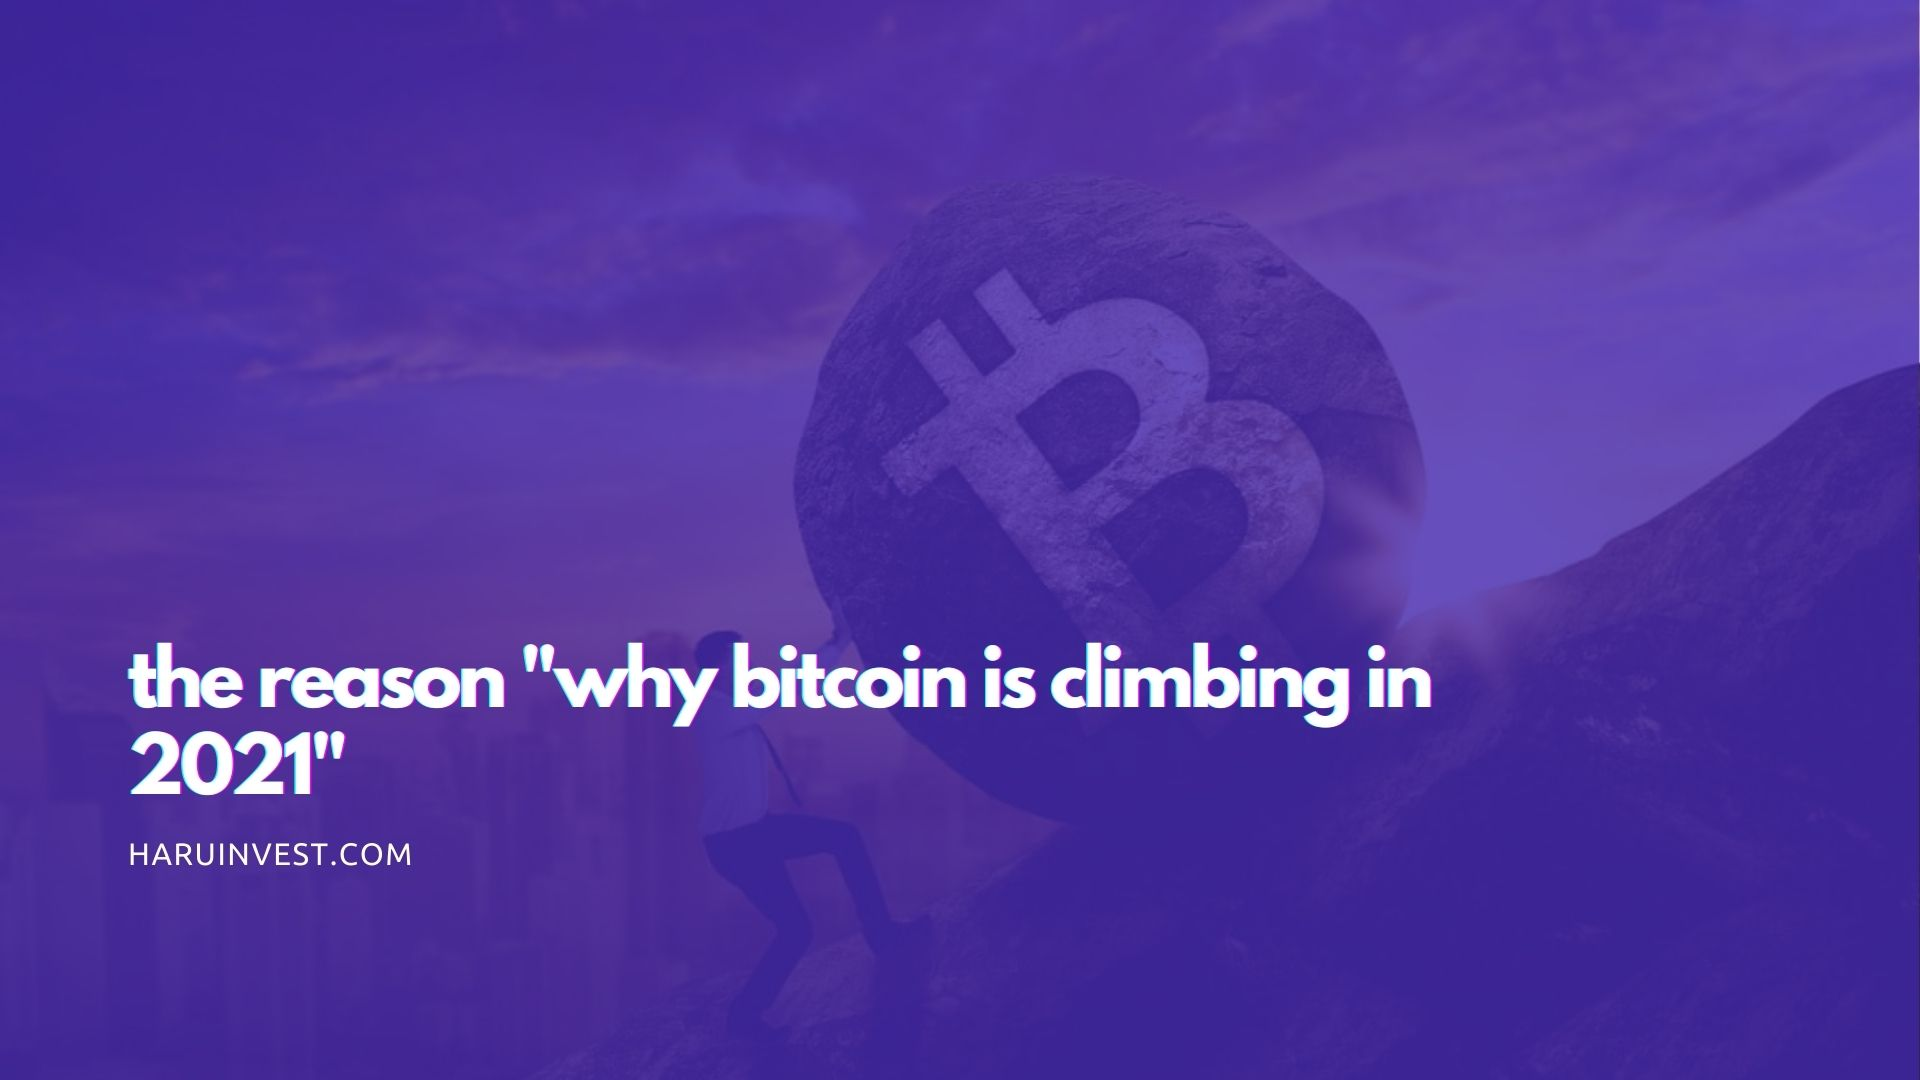 the reason why bitcoin is climbing in 2021